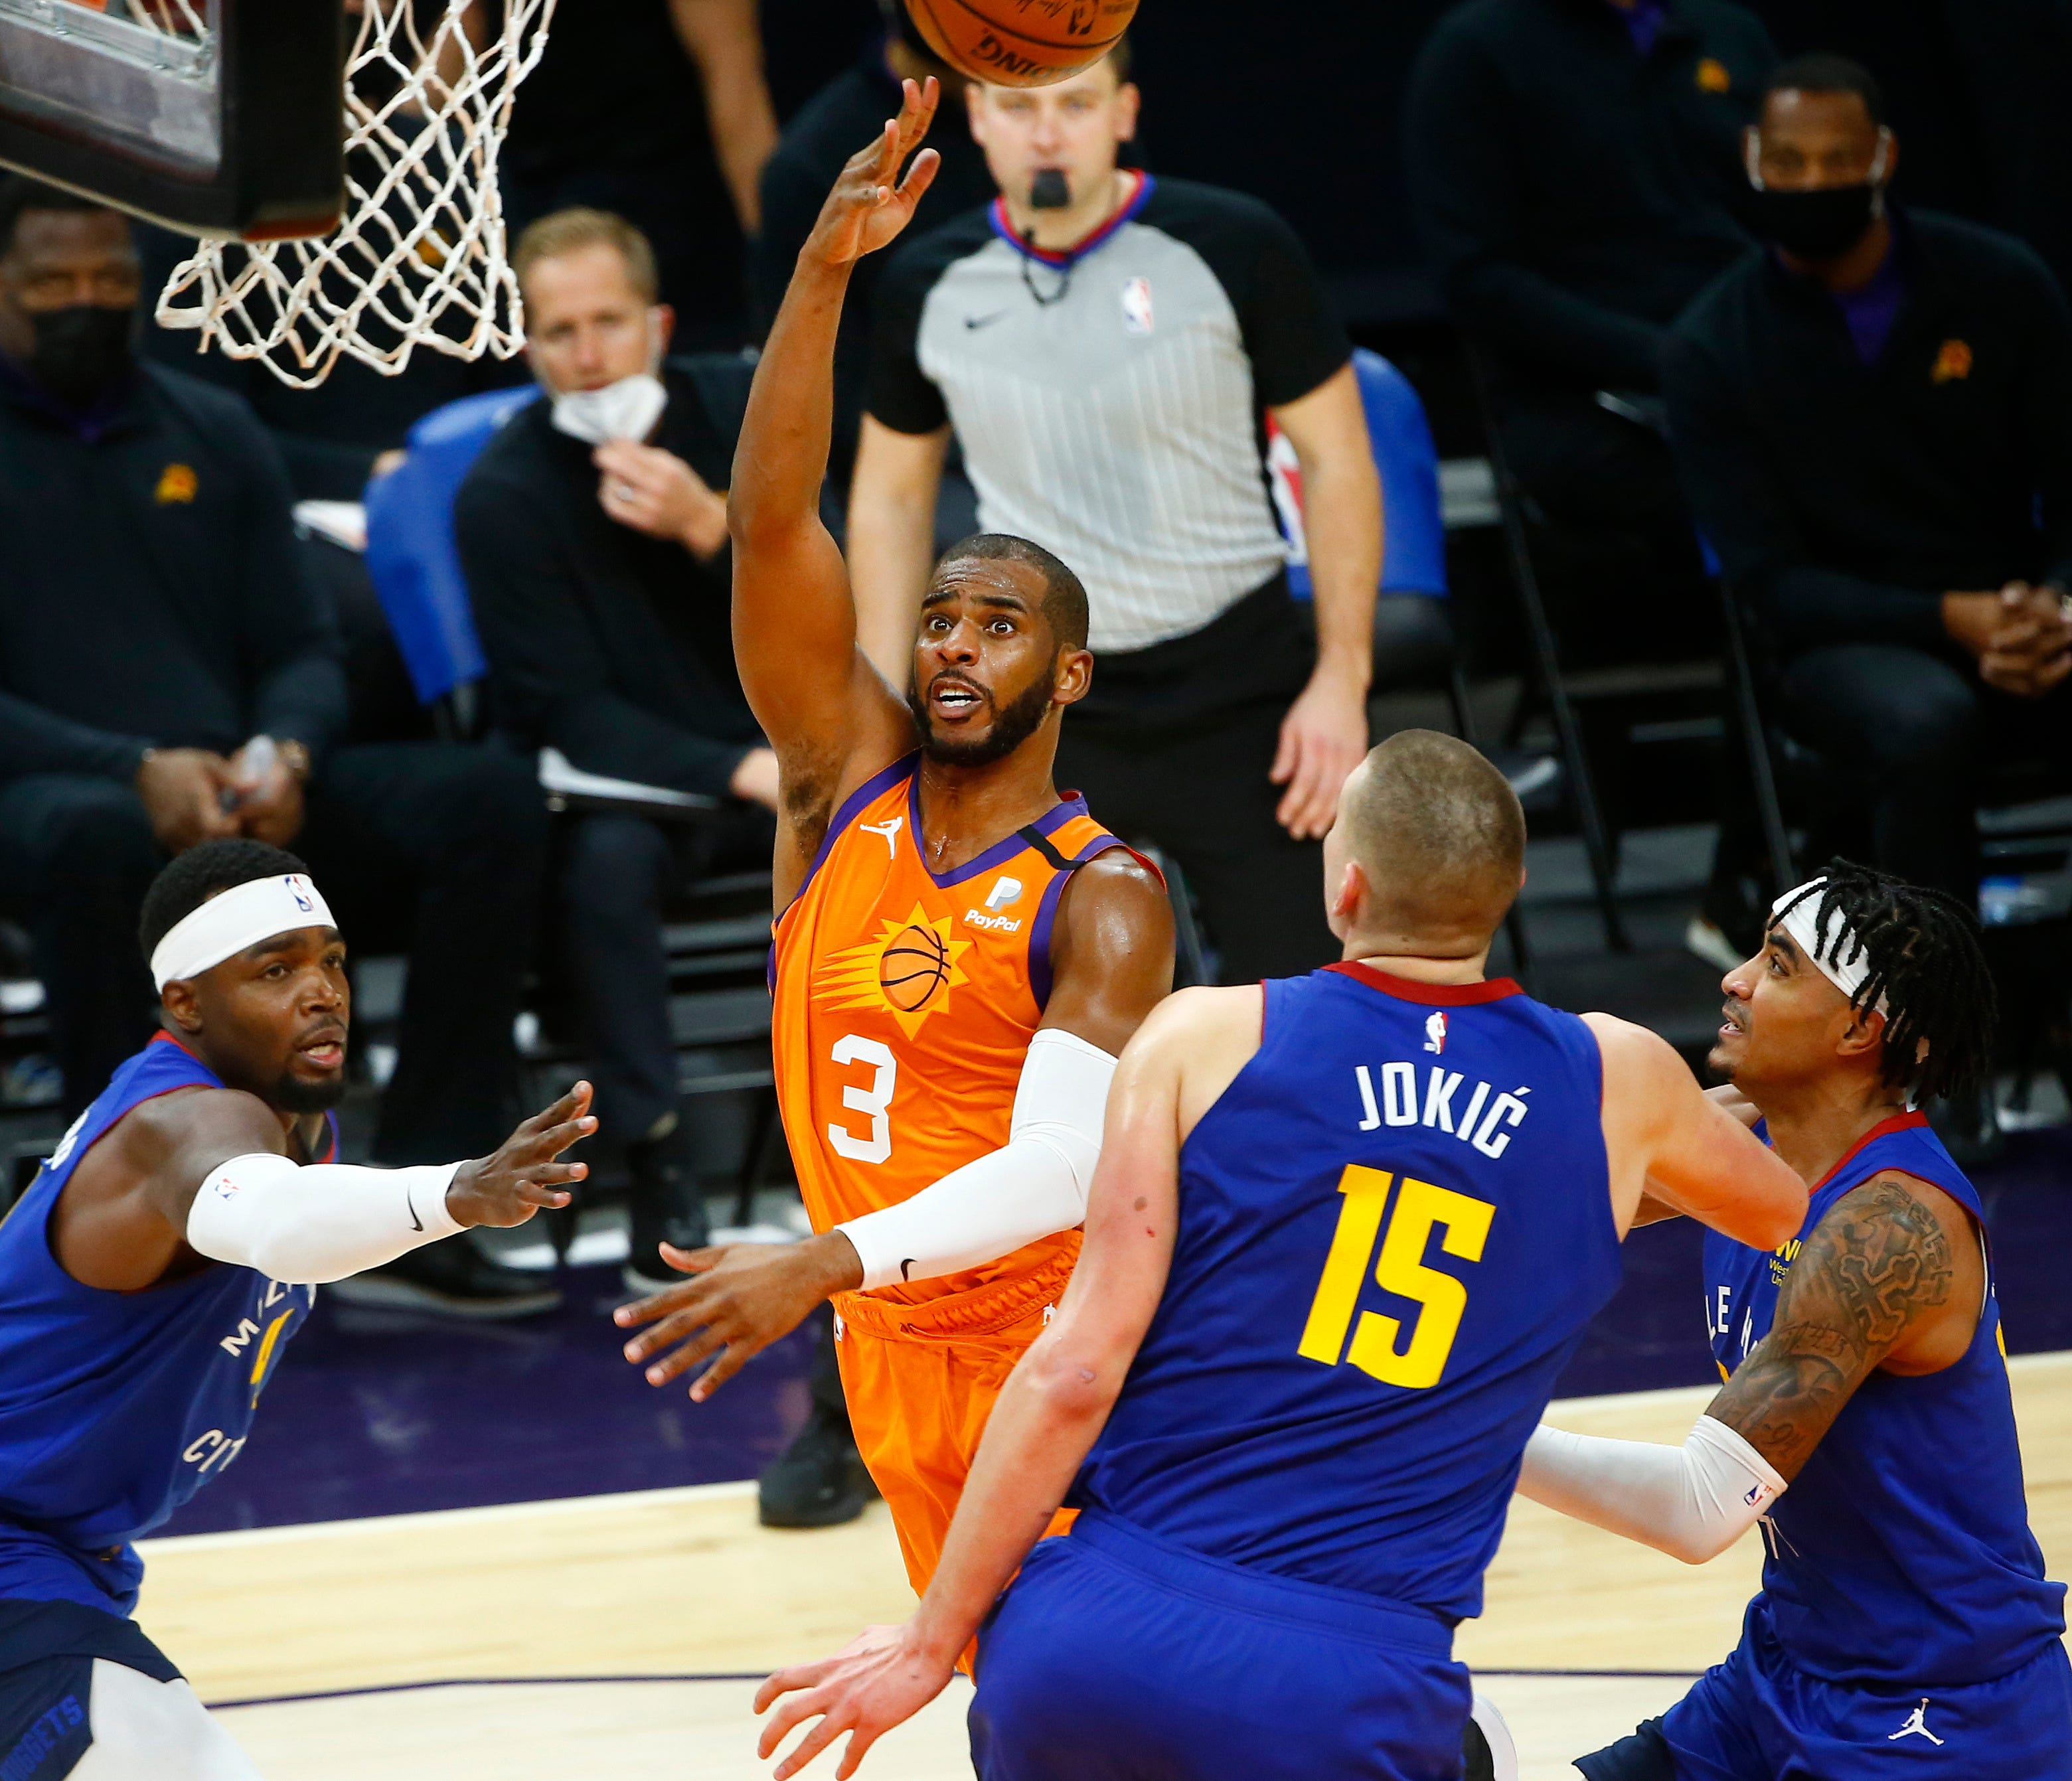 NBA Western Conference playoff picks: Who will win Nuggets-Suns, Clippers-Jazz series?